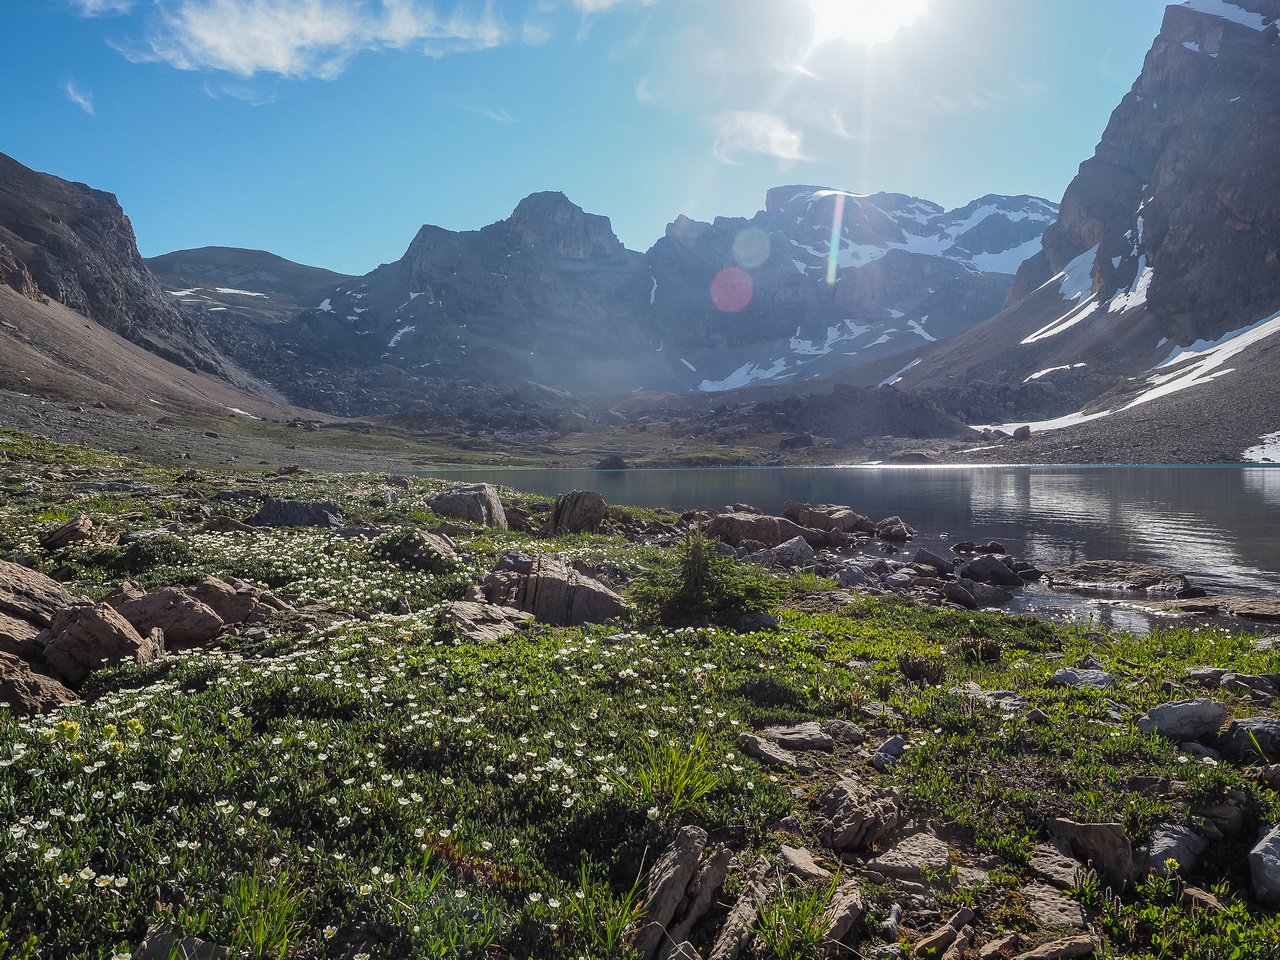 Carpets of wildflowers around Lake Alice with the blazing sun rising directly over our objective in the distance.